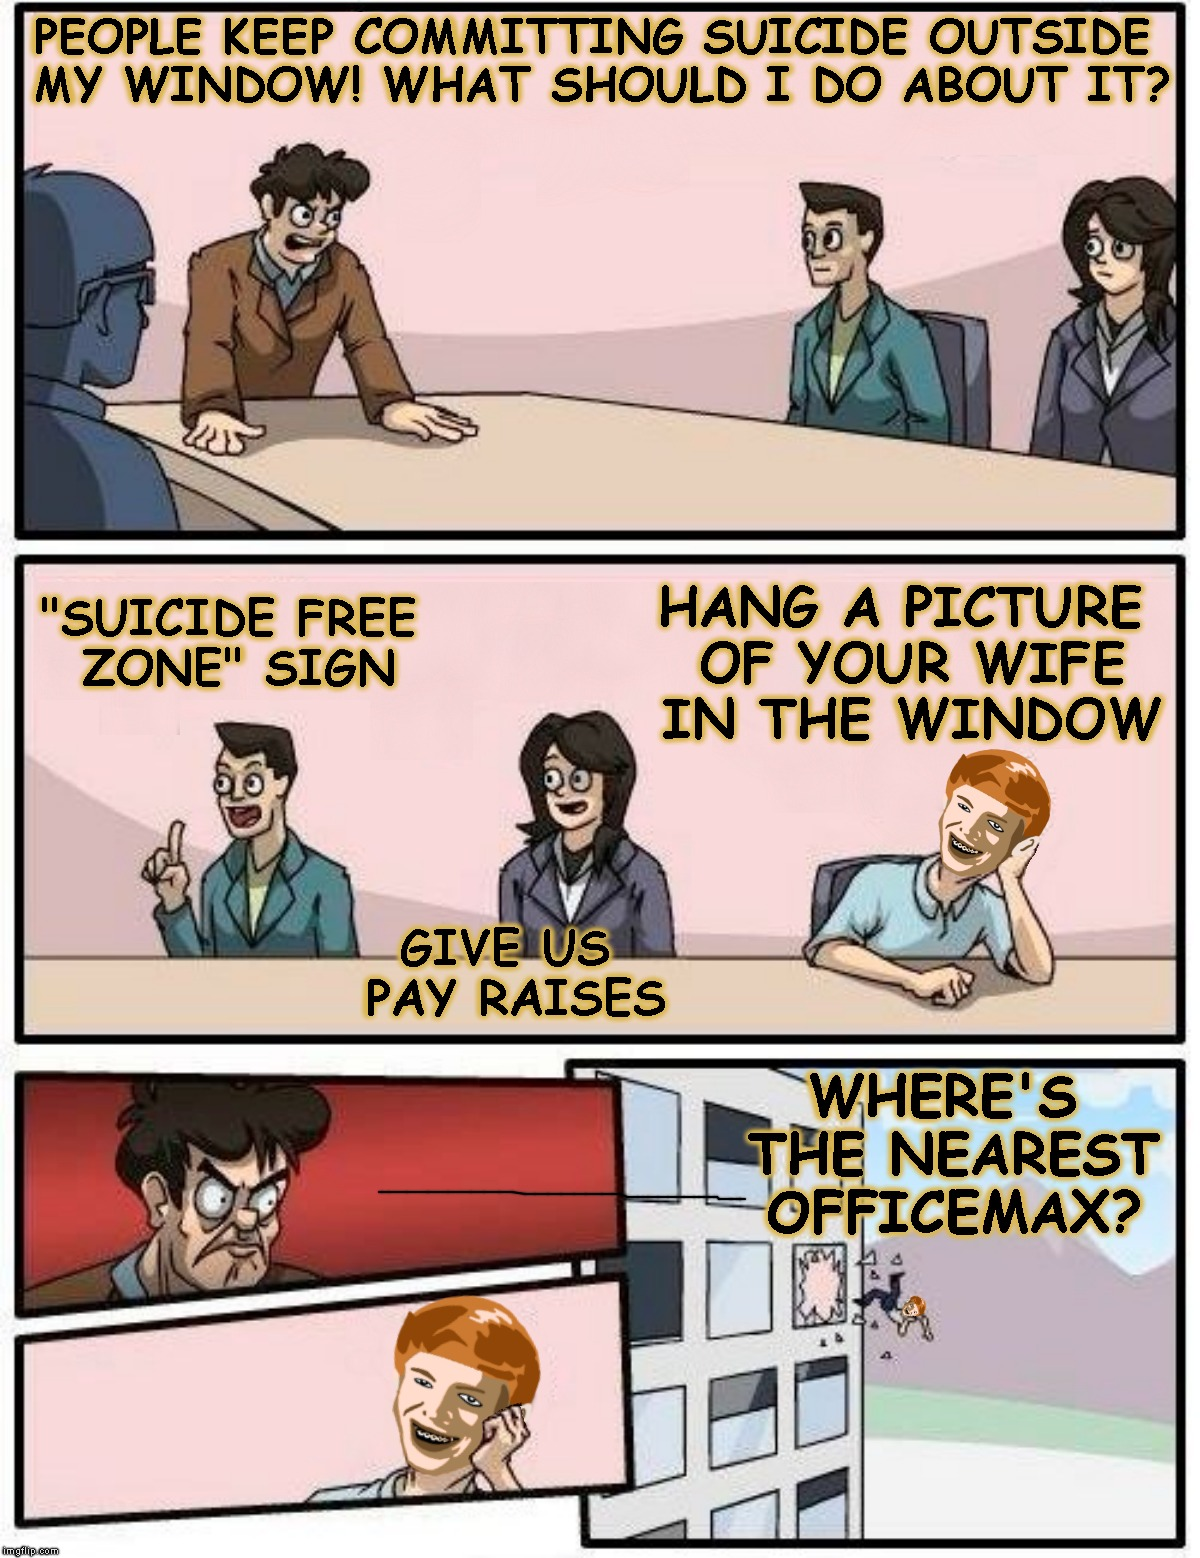 "Flight Of The Instigator | PEOPLE KEEP COMMITTING SUICIDE OUTSIDE MY WINDOW! WHAT SHOULD I DO ABOUT IT? ""SUICIDE FREE ZONE"" SIGN GIVE US PAY RAISES HANG A PICTURE OF Y 